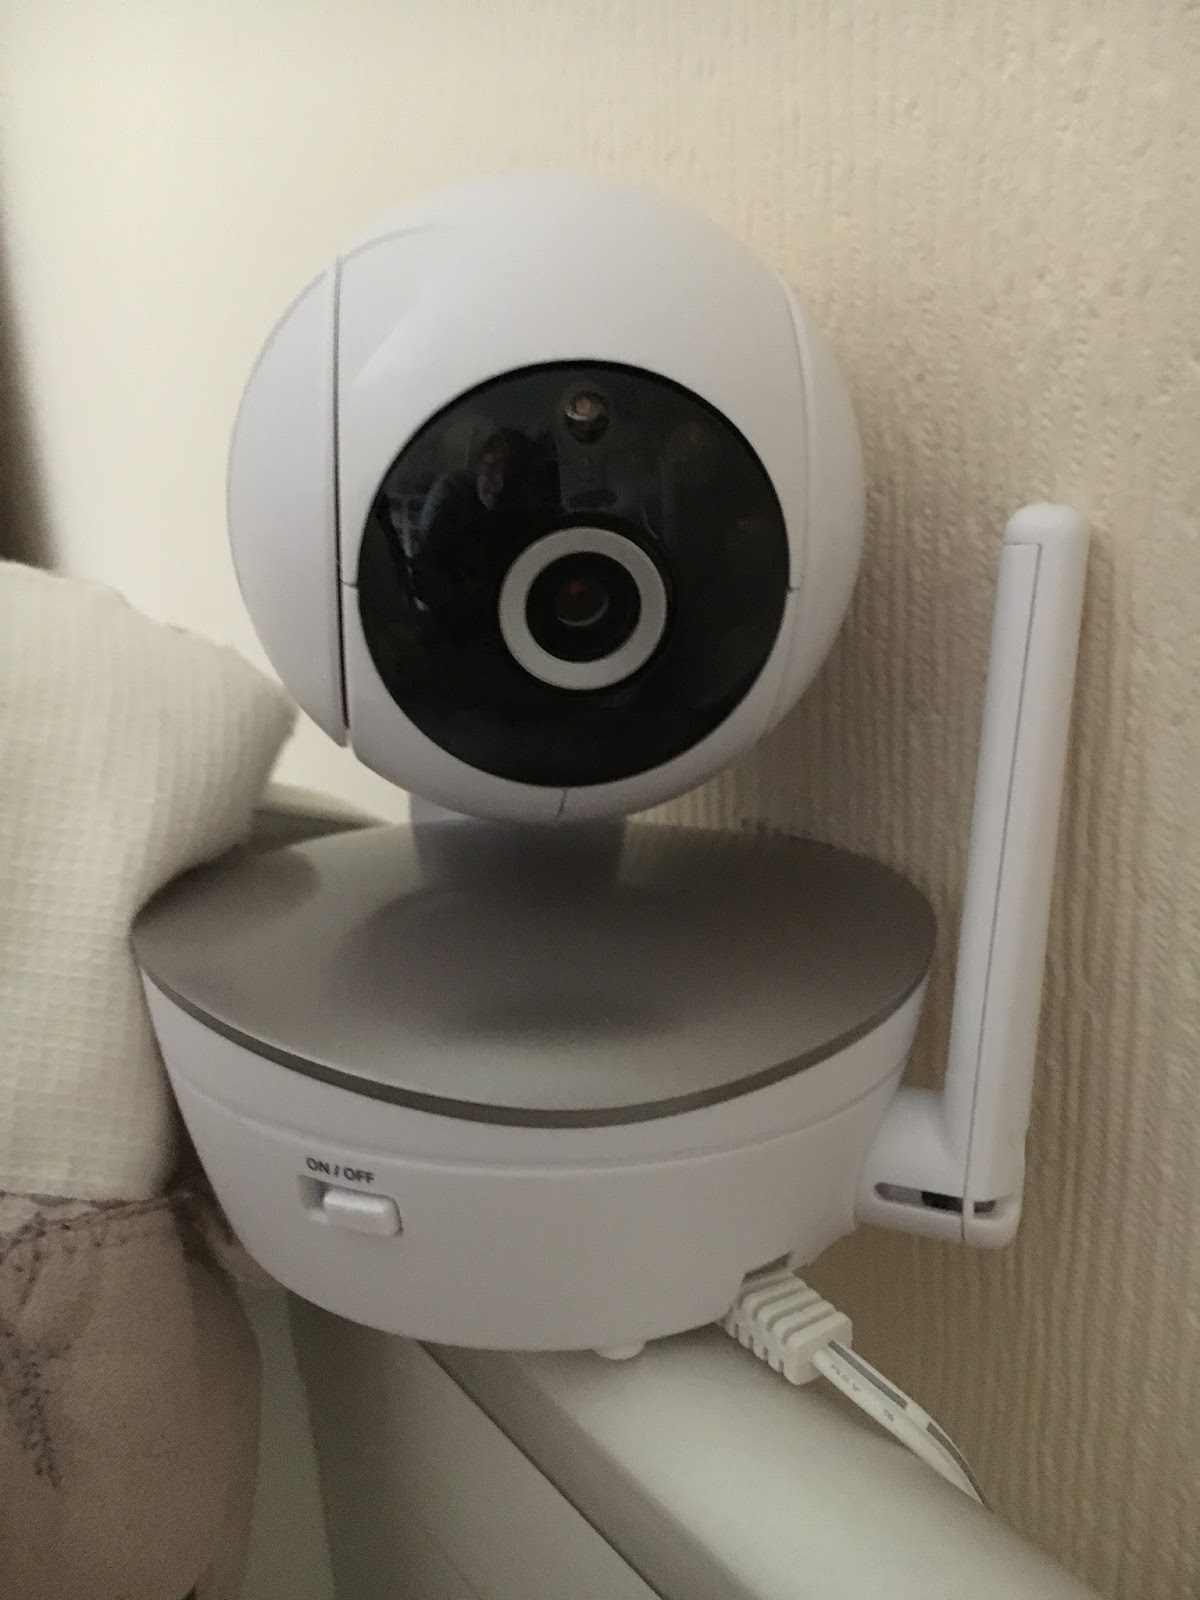 Kizzy Hearts: Motorola MBP49 Baby Monitor Review